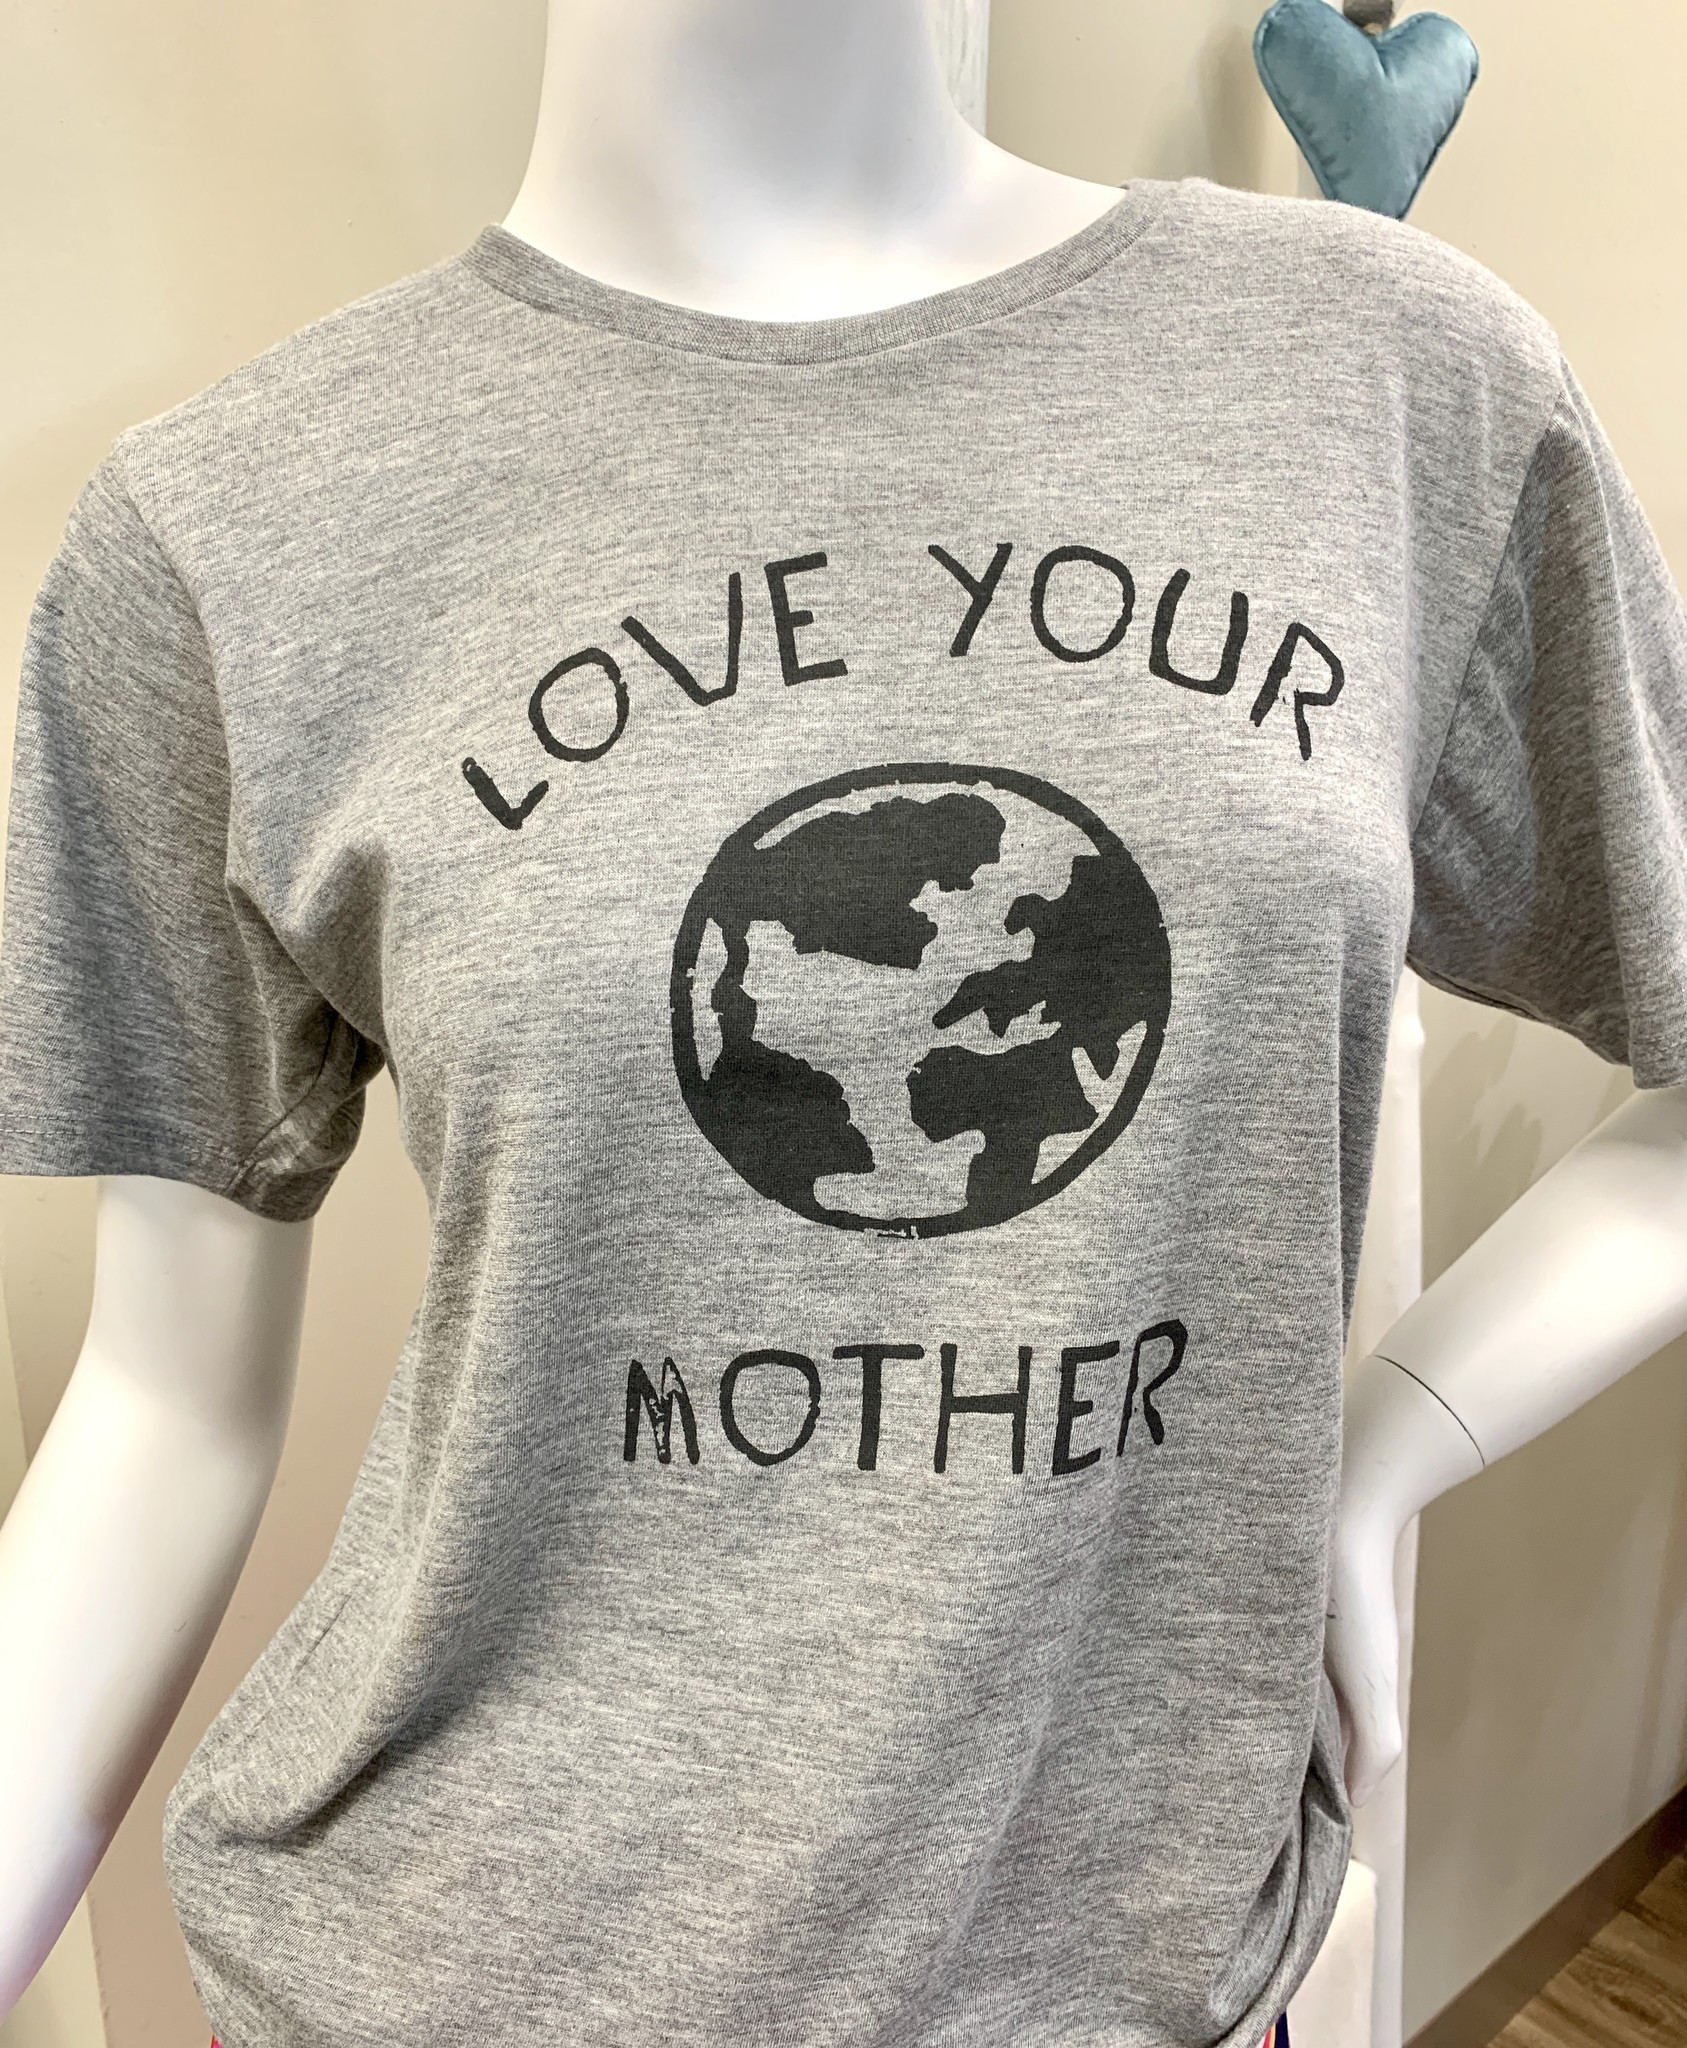 Sugarboo & Co. Sugarboo Tee - 'Love Your Mother'